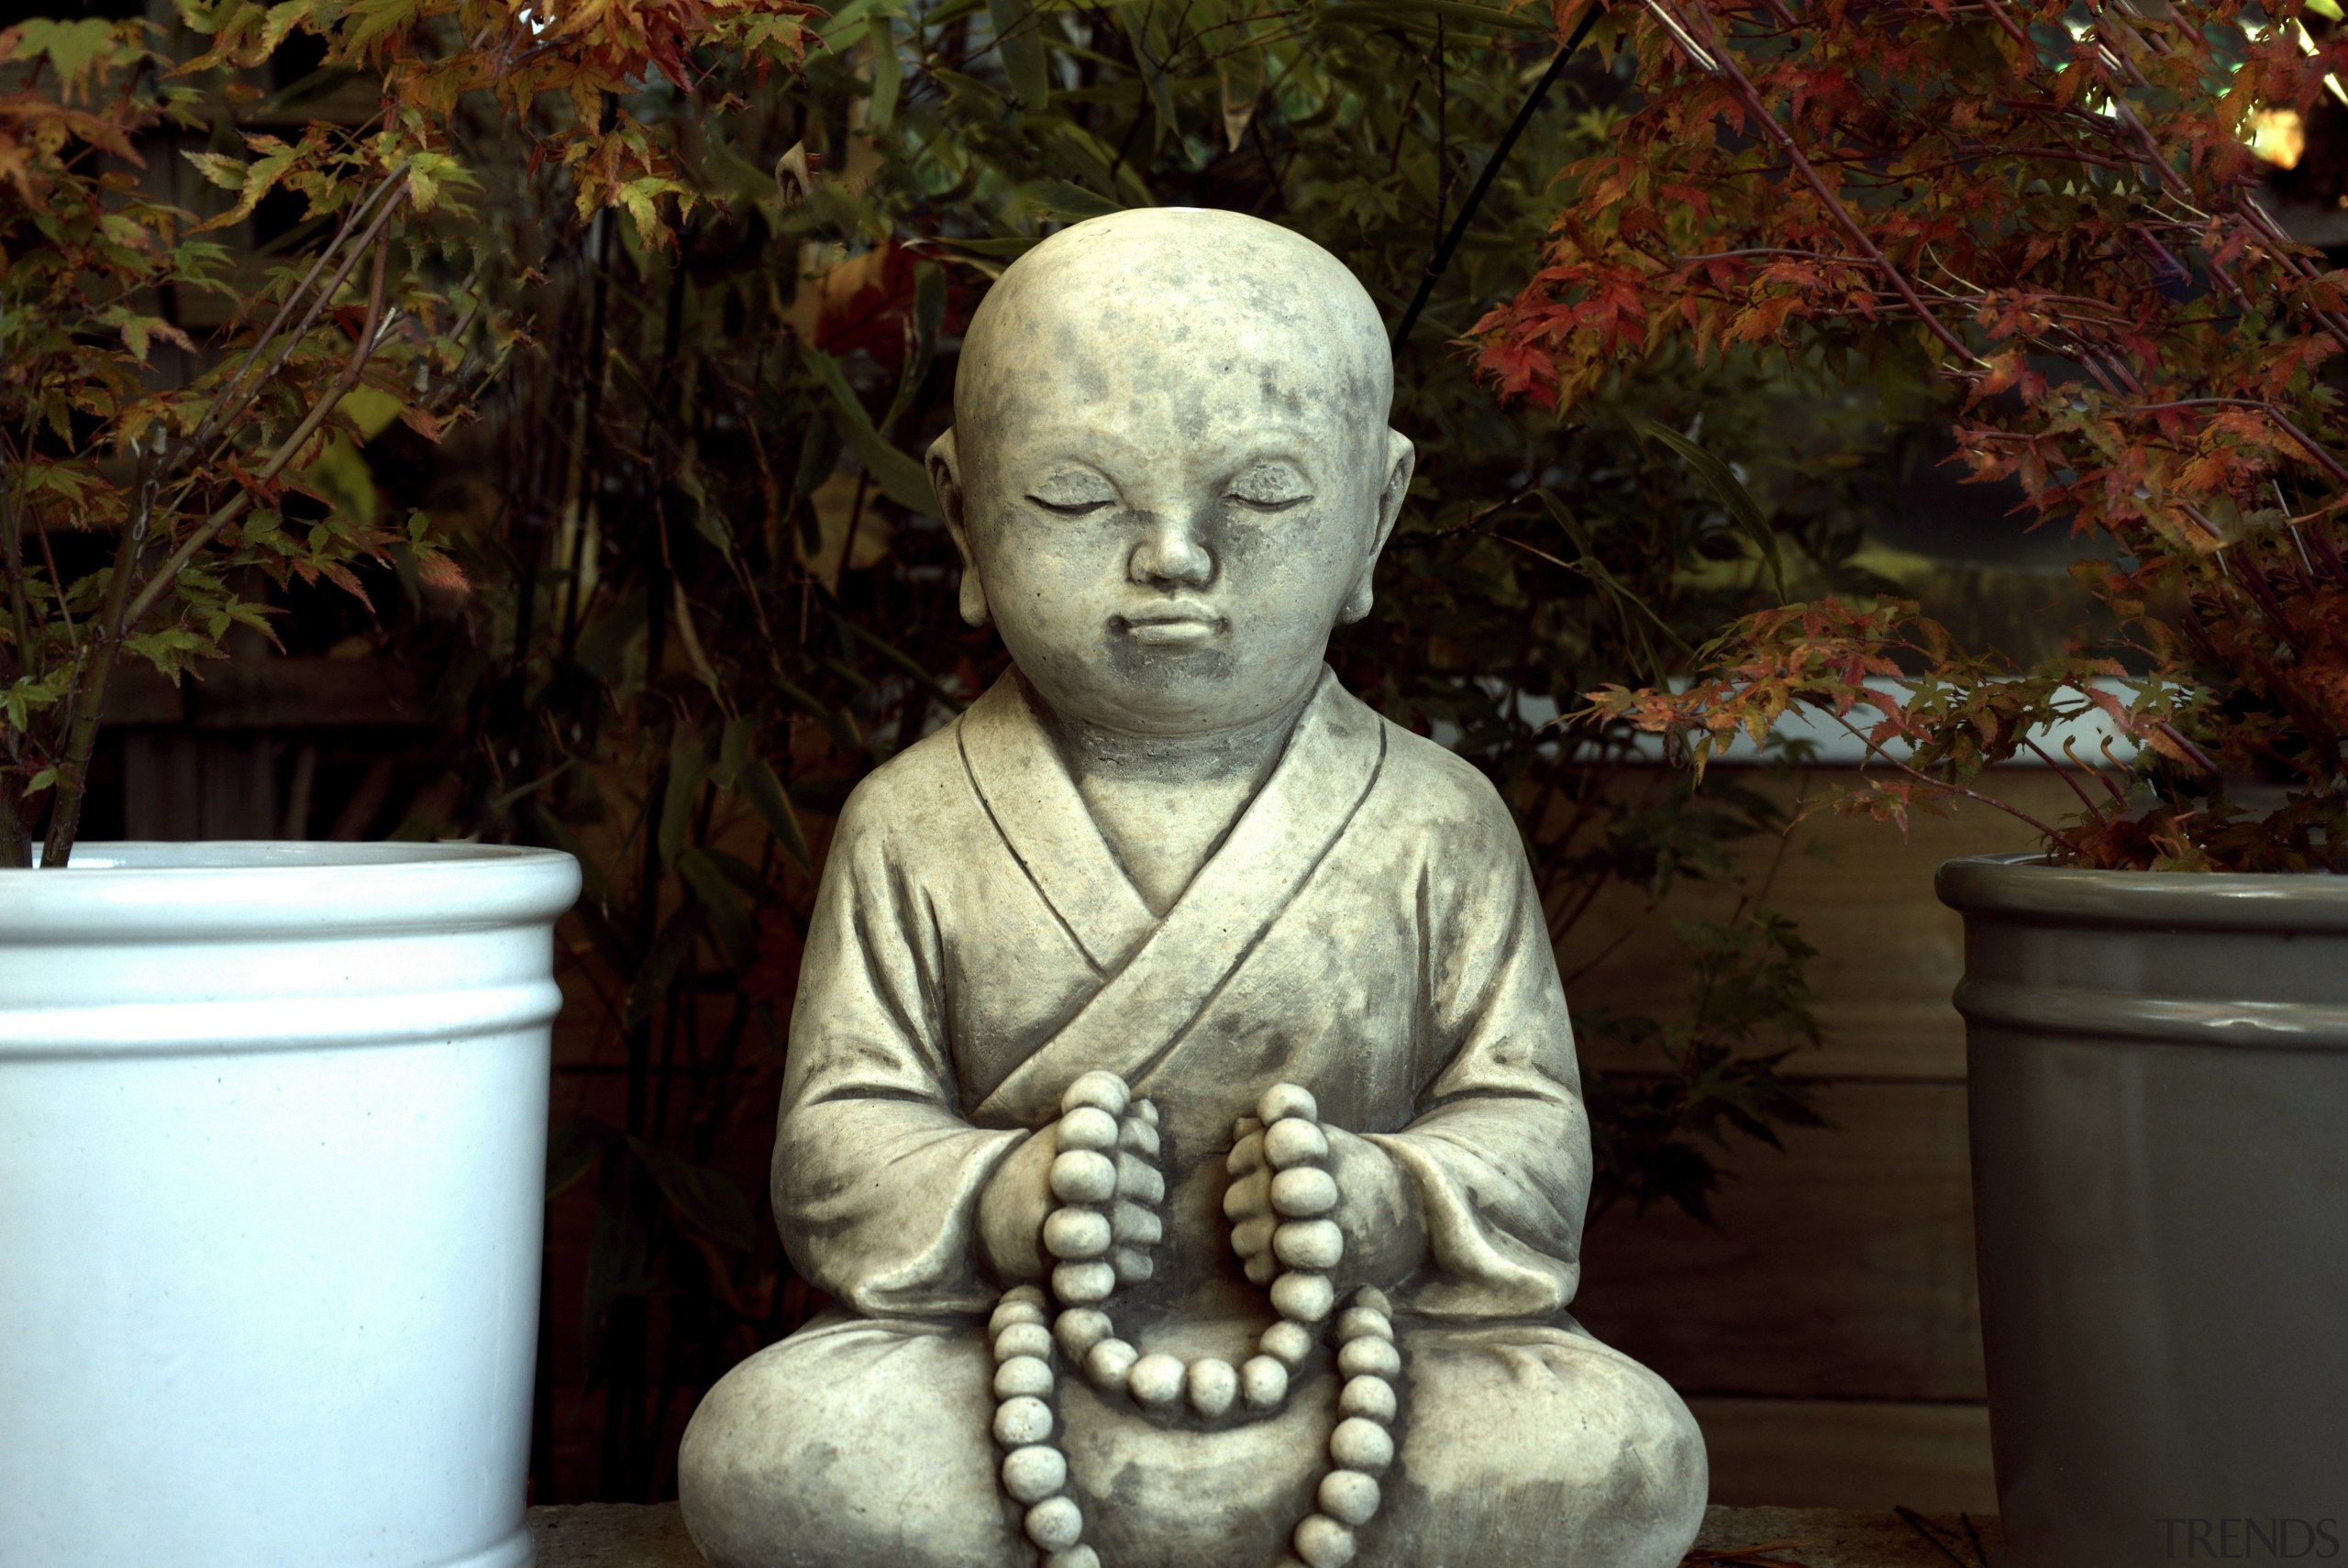 There is a whole new world of lovely art, classical sculpture, fictional character, lawn ornament, meditation, sculpture, statue, stone carving, temple, black, brown